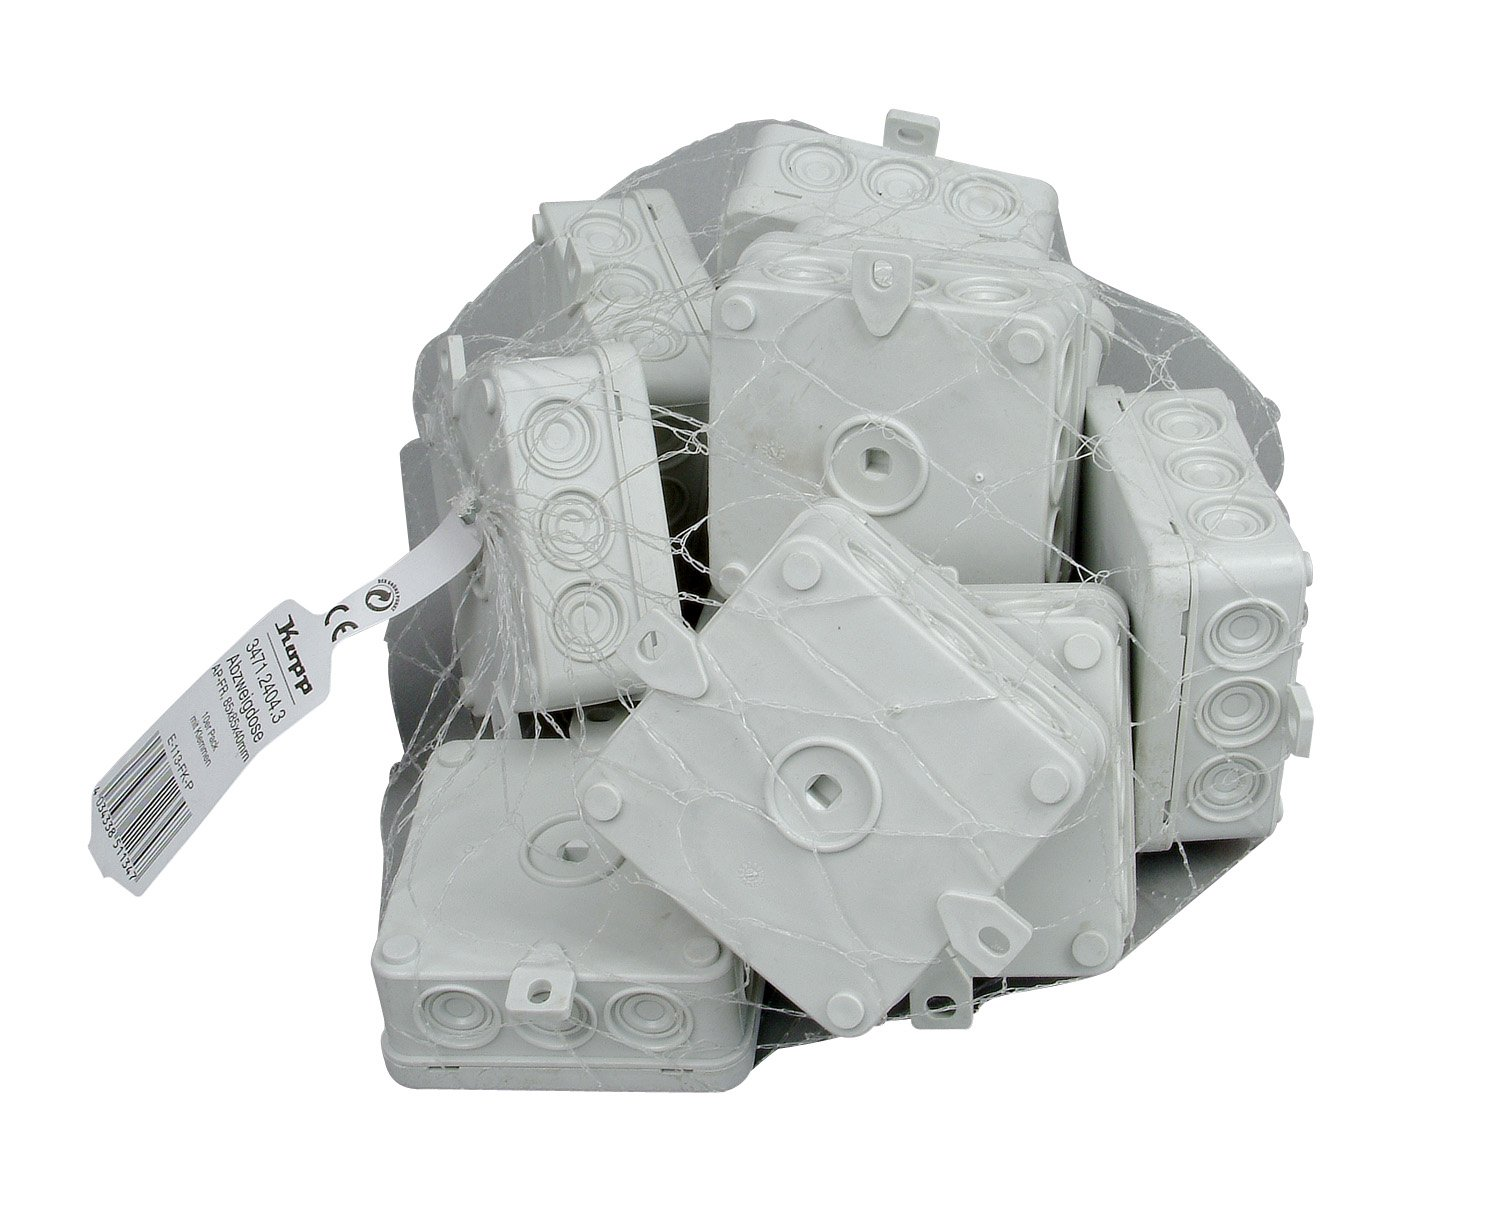 Kopp 347114008 Junction Box Surface-Mount for Wet Rooms with 5-Pin Connecting Terminal Plate IP 54/85 x 85 x 40 mm